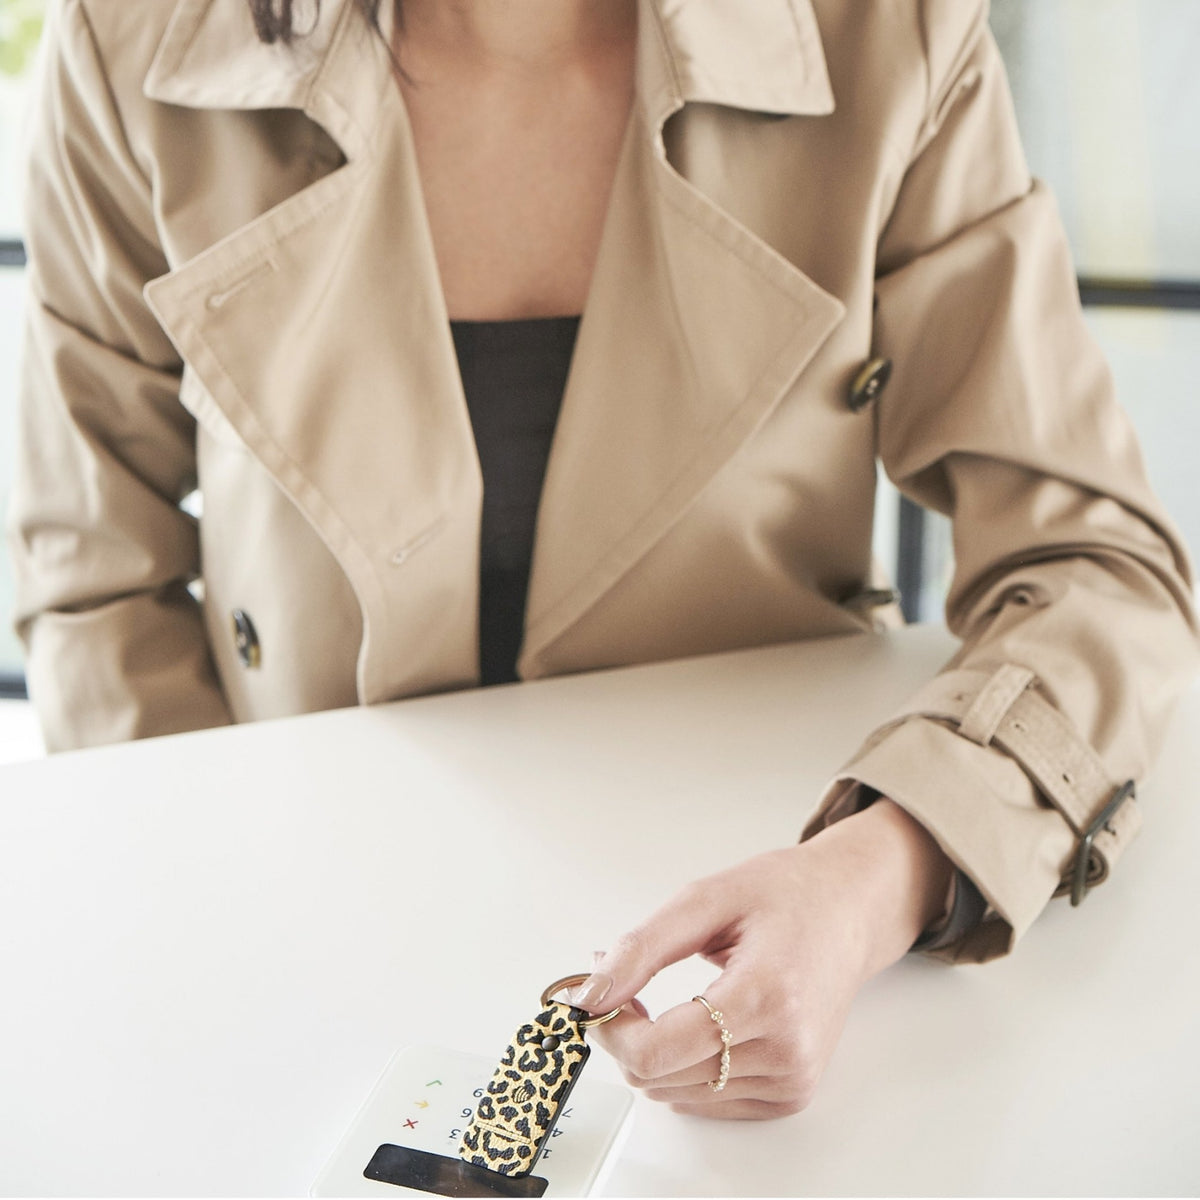 Gifts for the gadget lover with contactless payment chip powered by Pingit - Top technology gifts 2020 key fob device in leopard print made by Tovi Sorga